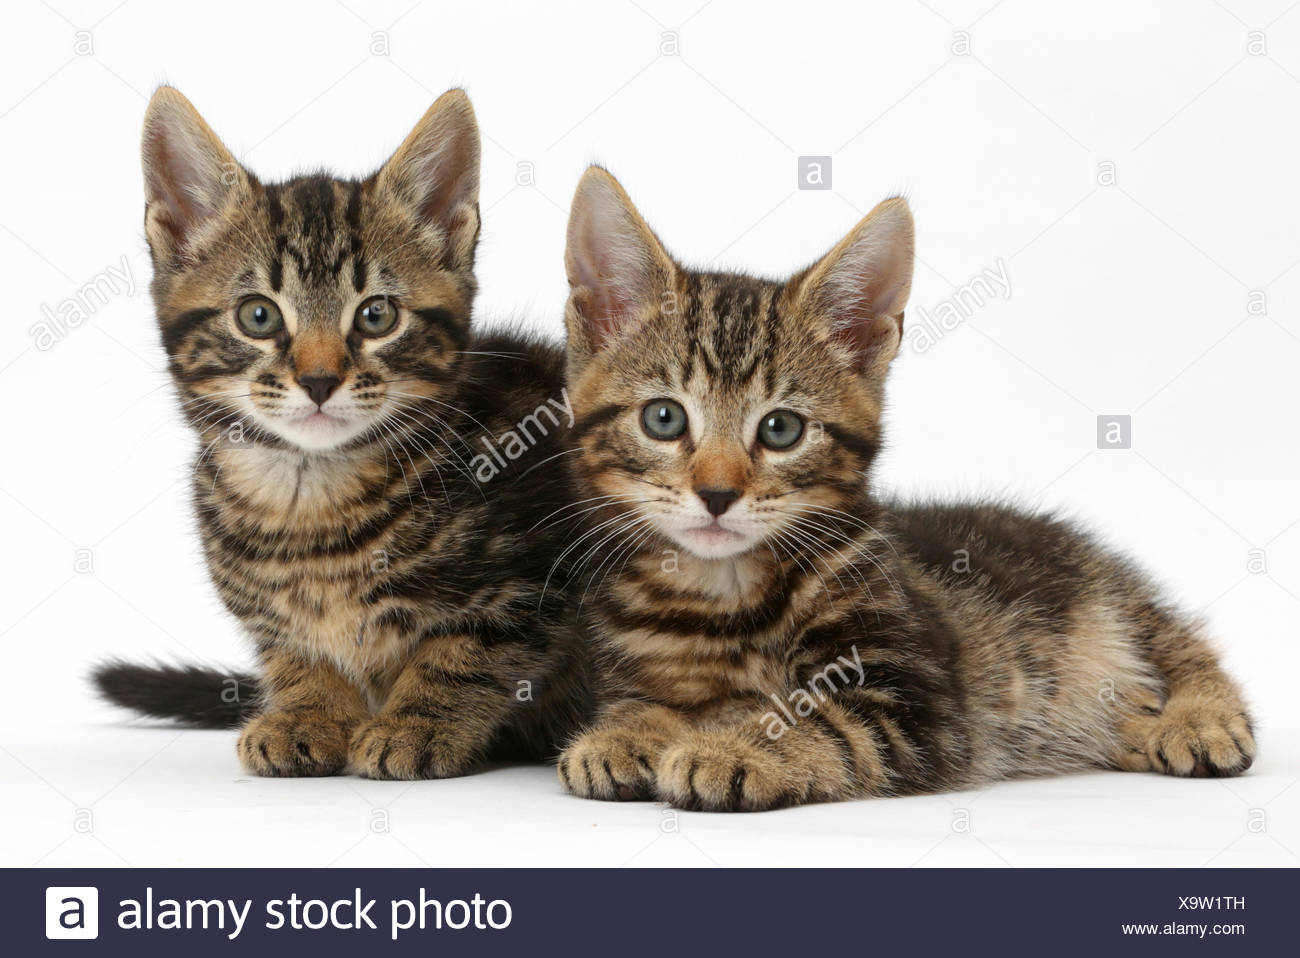 Two tabby kittens, Smudge and Picasso, 8 weeks. - Stock Image